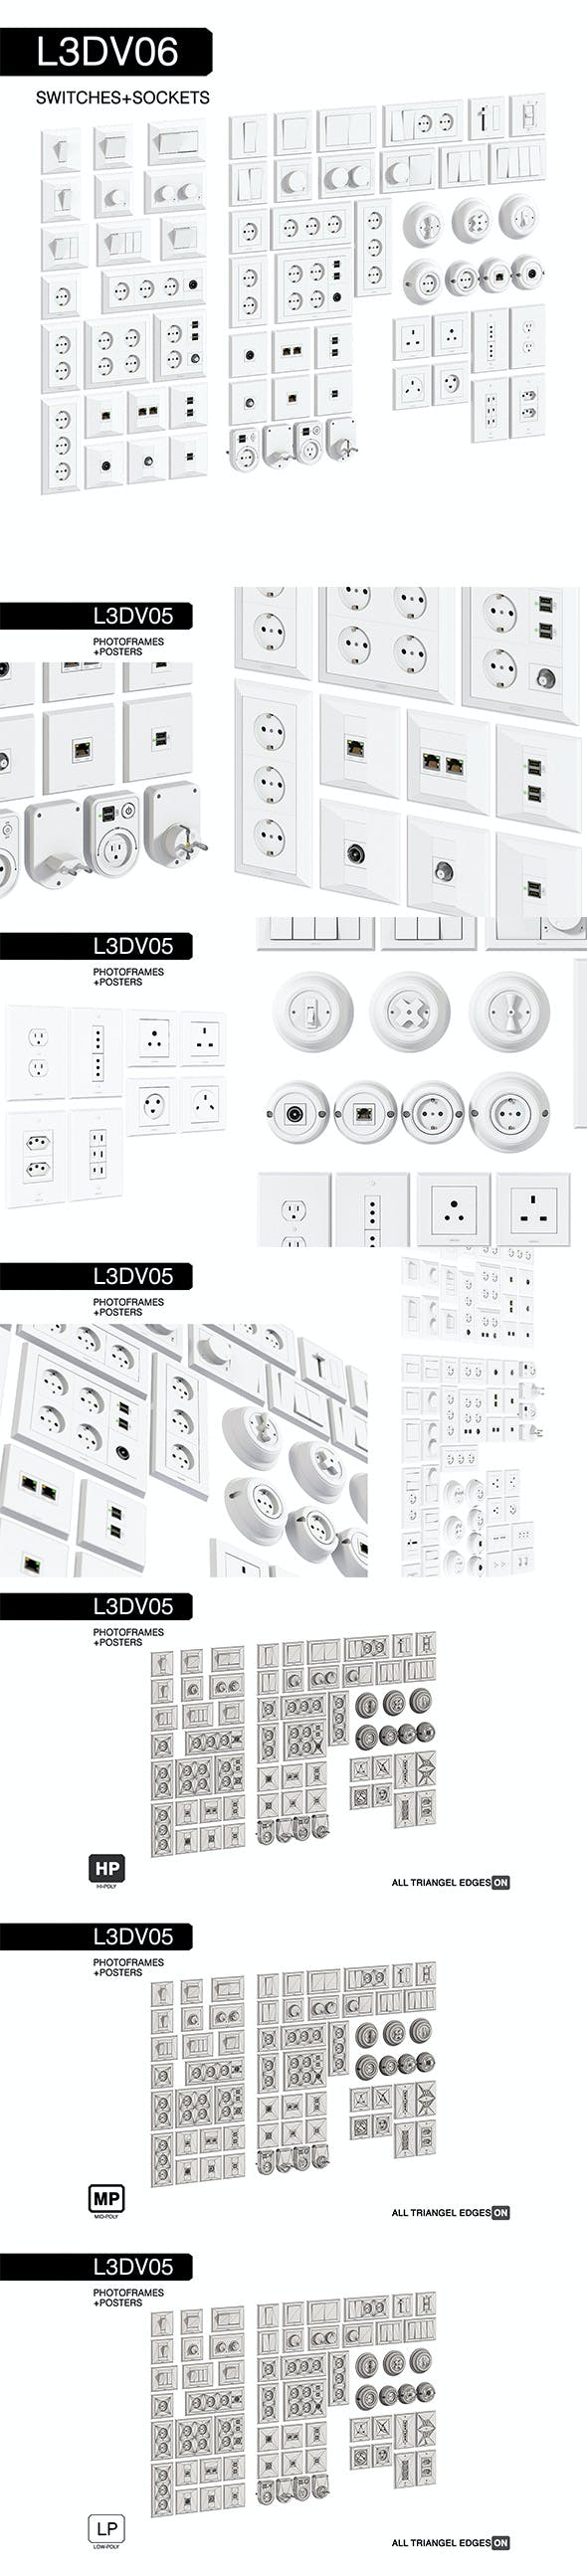 L3DV06G01 - wall switches sockets set - 3DOcean Item for Sale